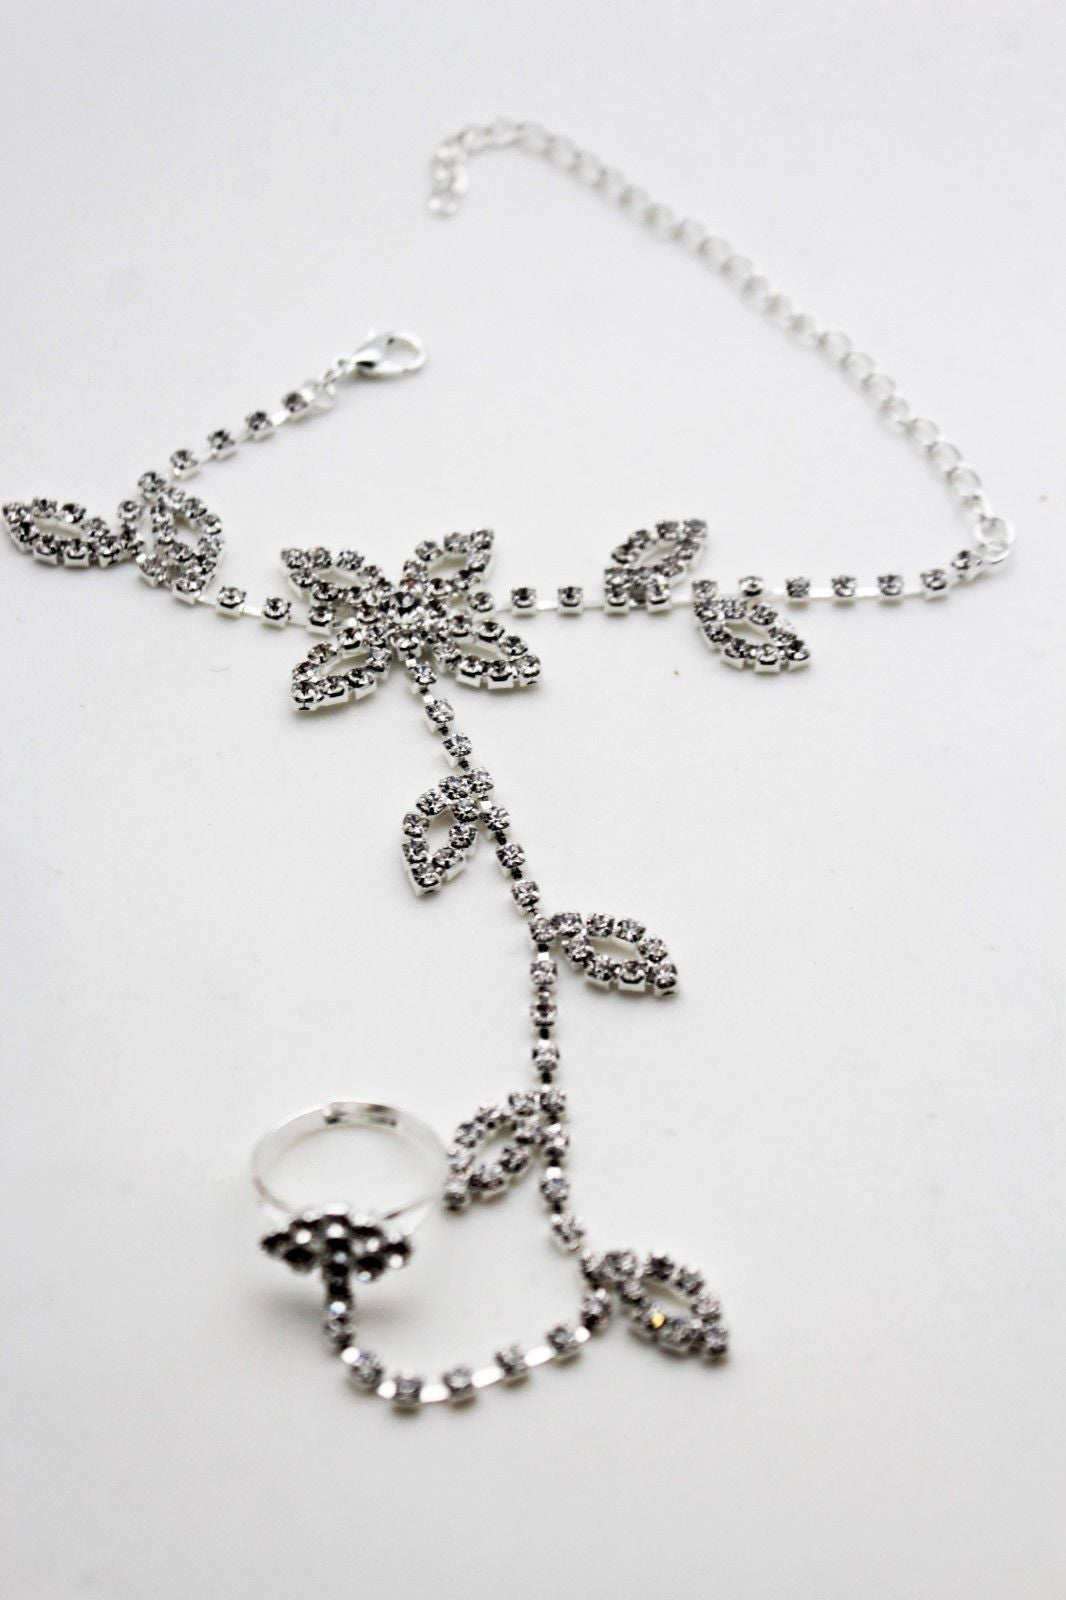 flower mixed metal chains necklace run prod molly